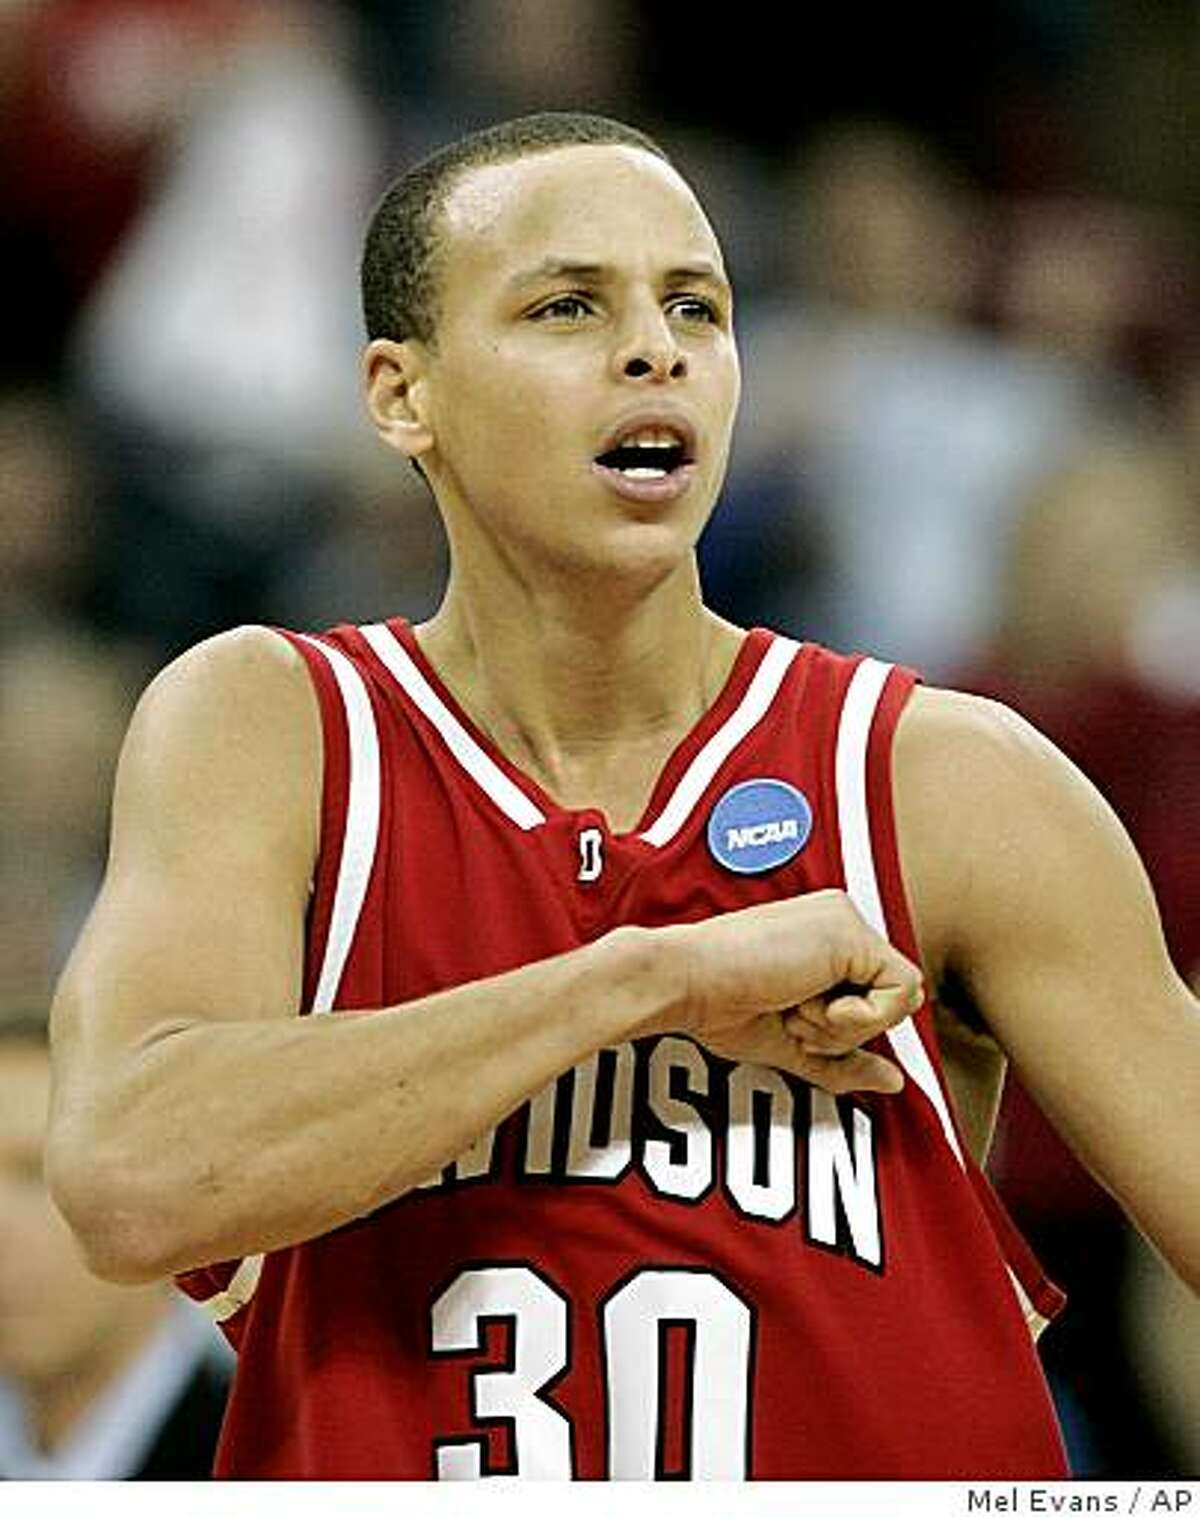 Davidson's Stephen Curry reacts following a basket during the second half of a first-round NCAA men's basketball tournament Midwest Regional game against Gonzaga in Raleigh, N.C., Friday, March 21, 2008. Davidson won 82-76. (AP Photo/Mel Evans)